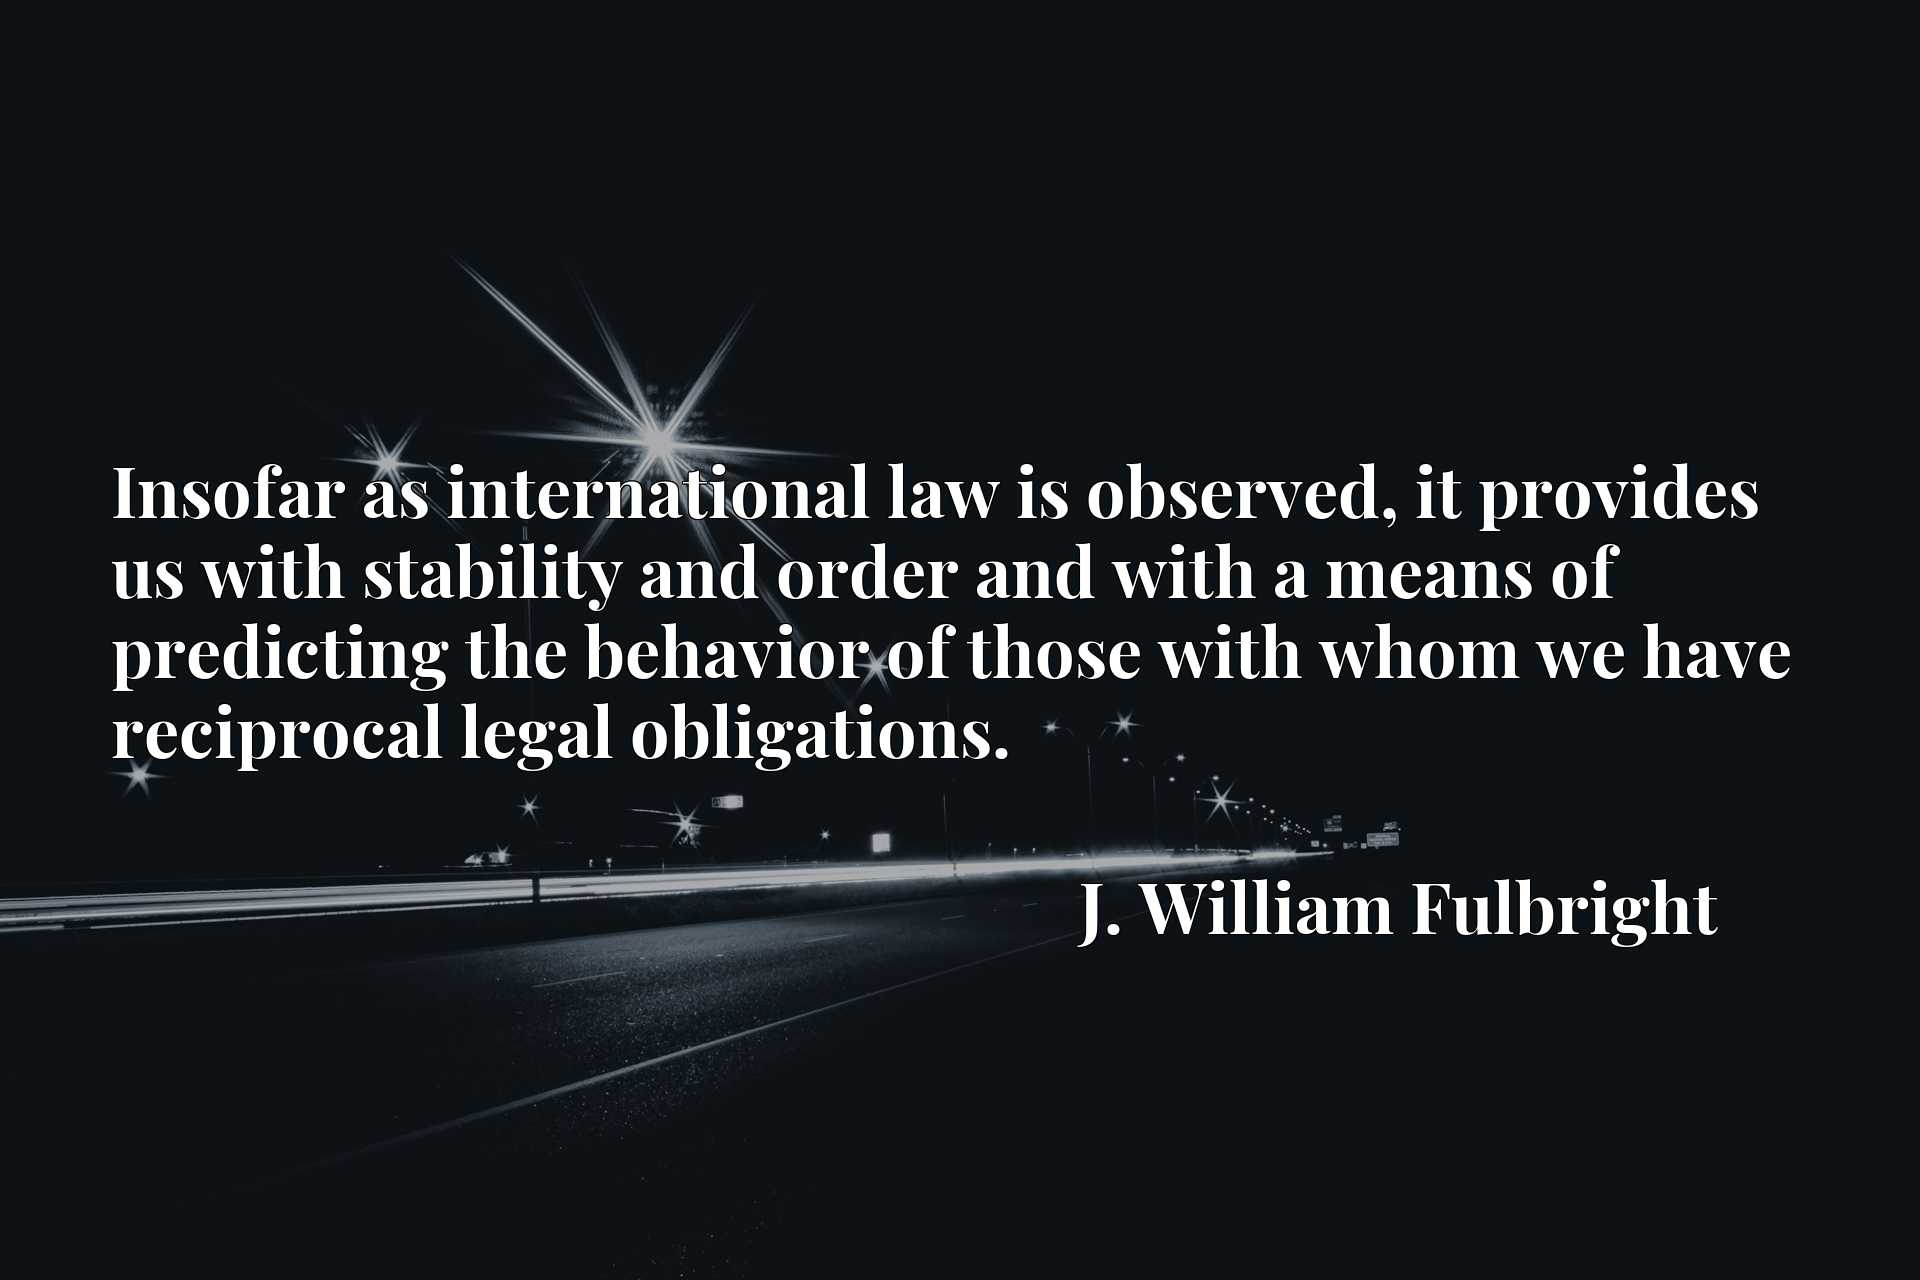 Quote Picture :Insofar as international law is observed, it provides us with stability and order and with a means of predicting the behavior of those with whom we have reciprocal legal obligations.